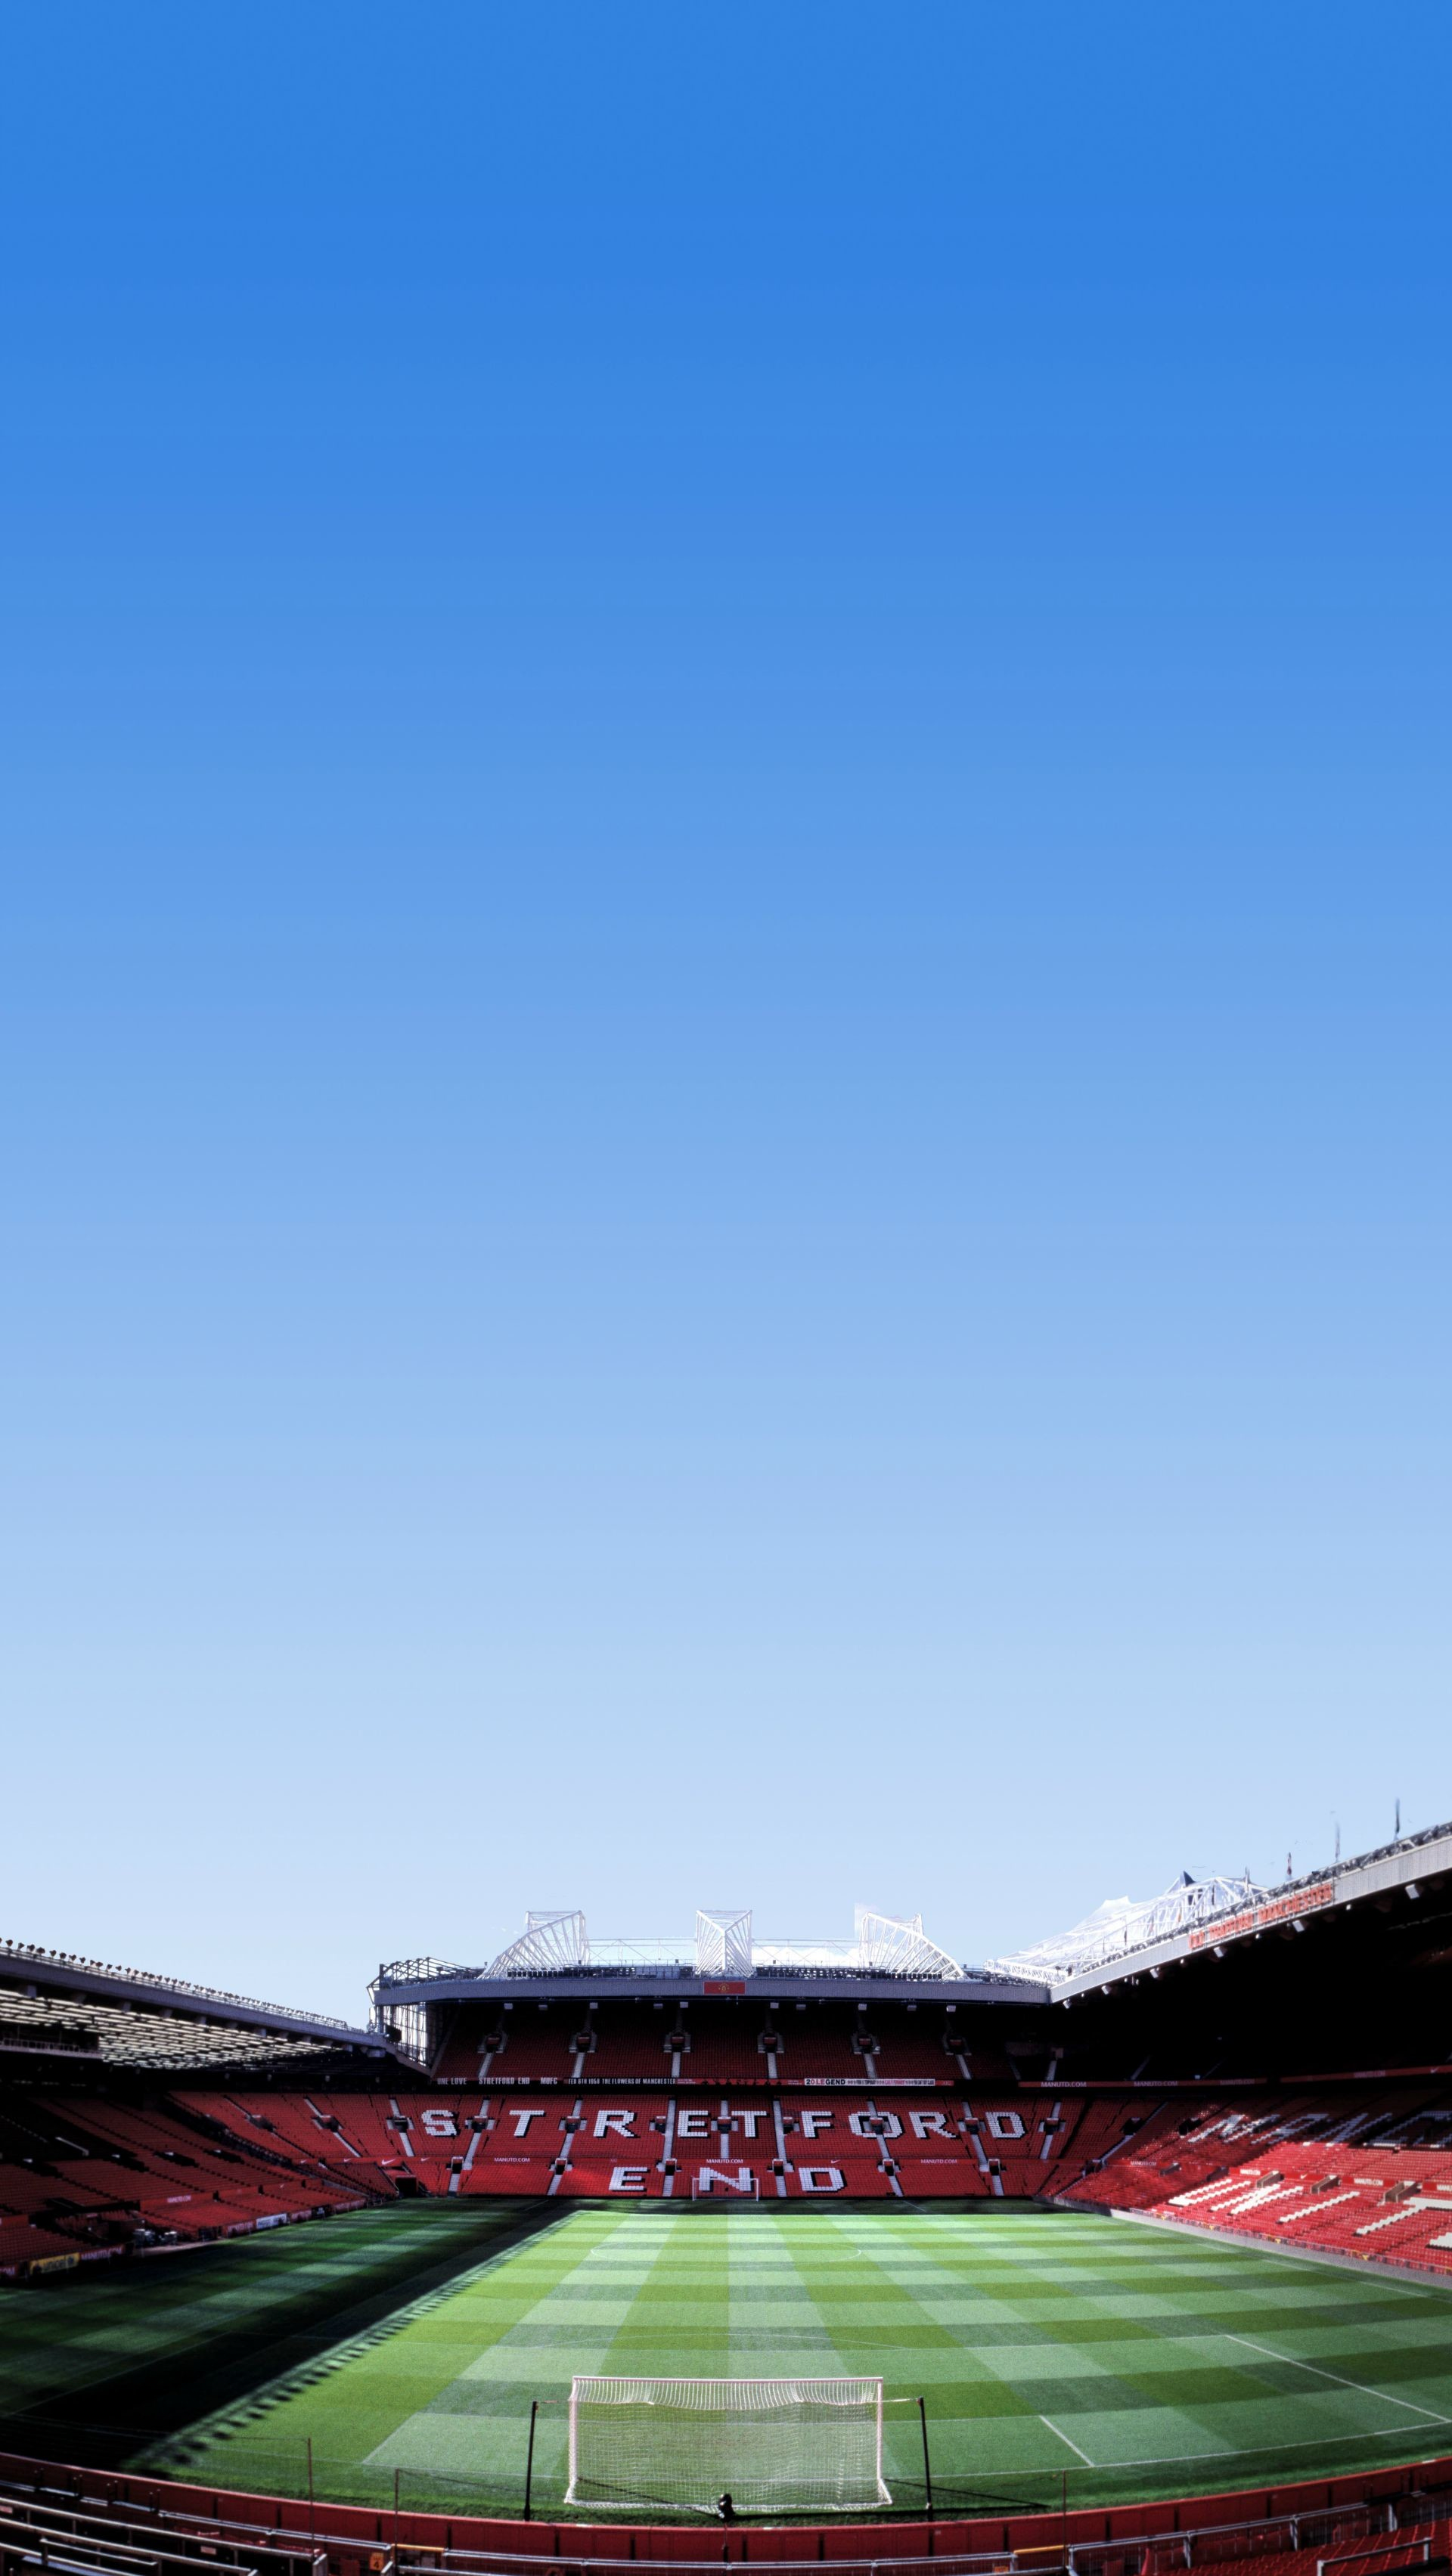 Old Trafford Wallpaper Hd Iphone   Reviewwalls co Old Trafford Wallpaper 64 Images